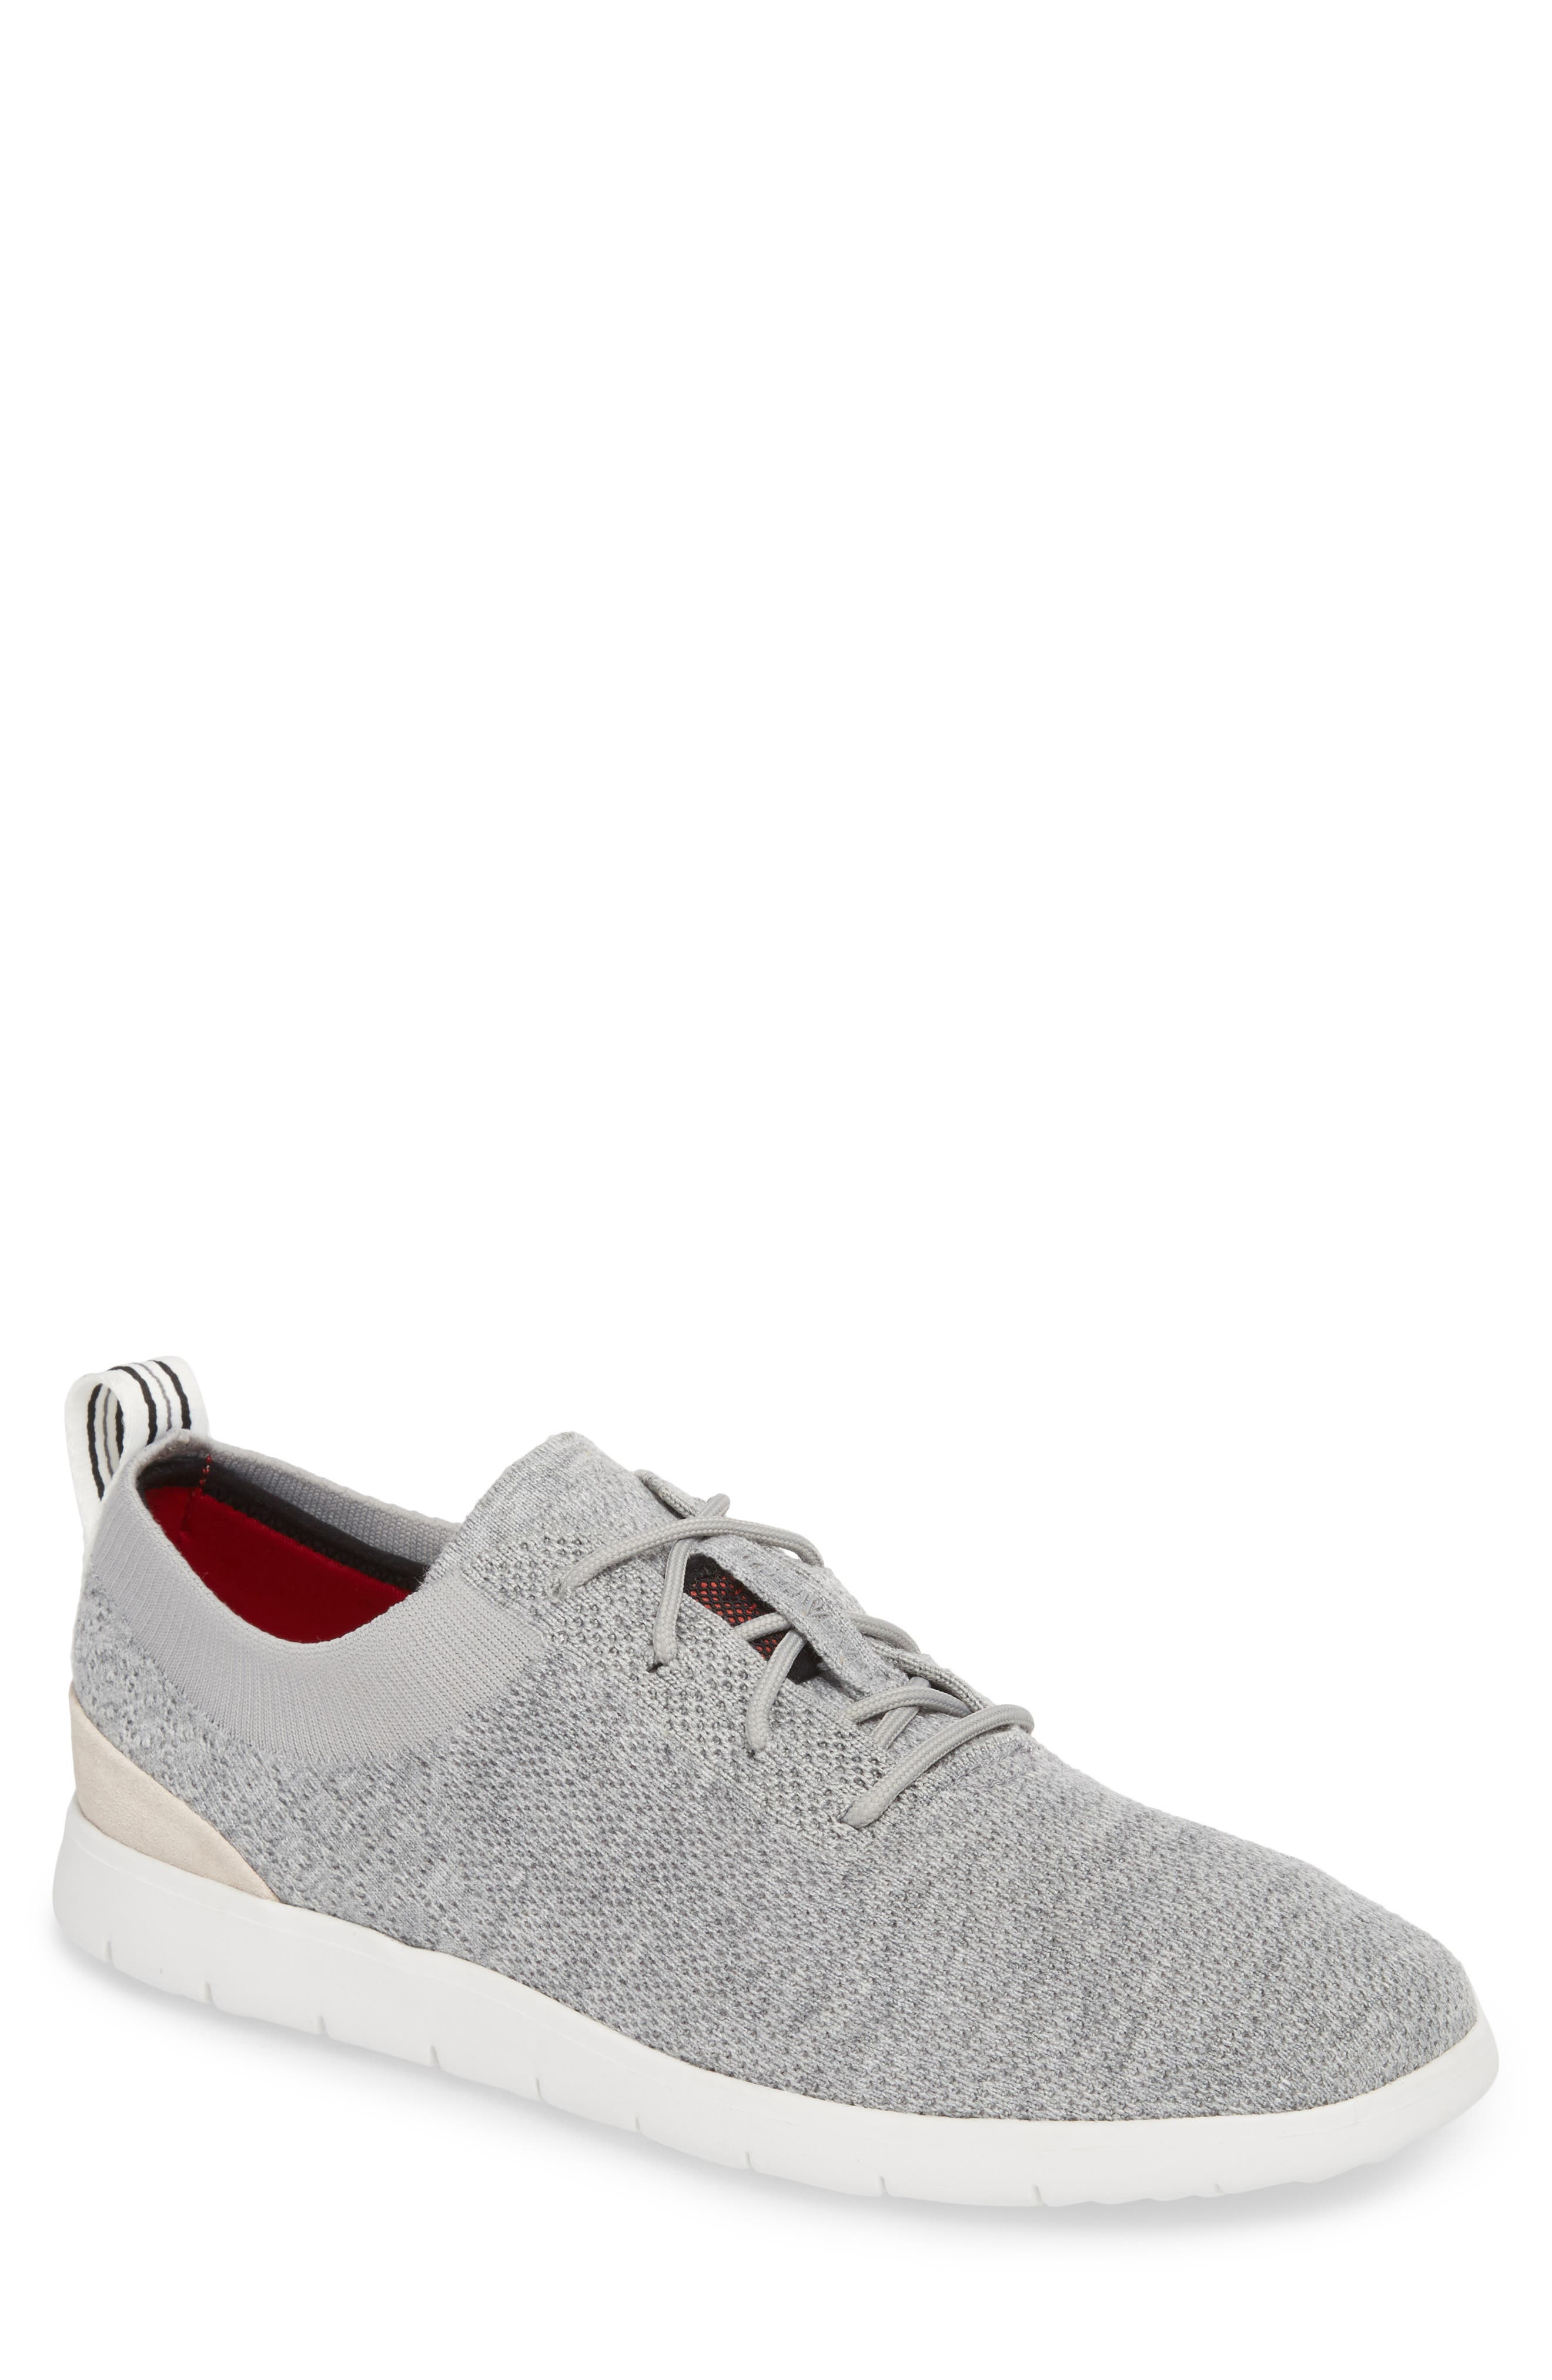 Feli HyperWeave Sneaker,                             Main thumbnail 1, color,                             SEAL LEATHER